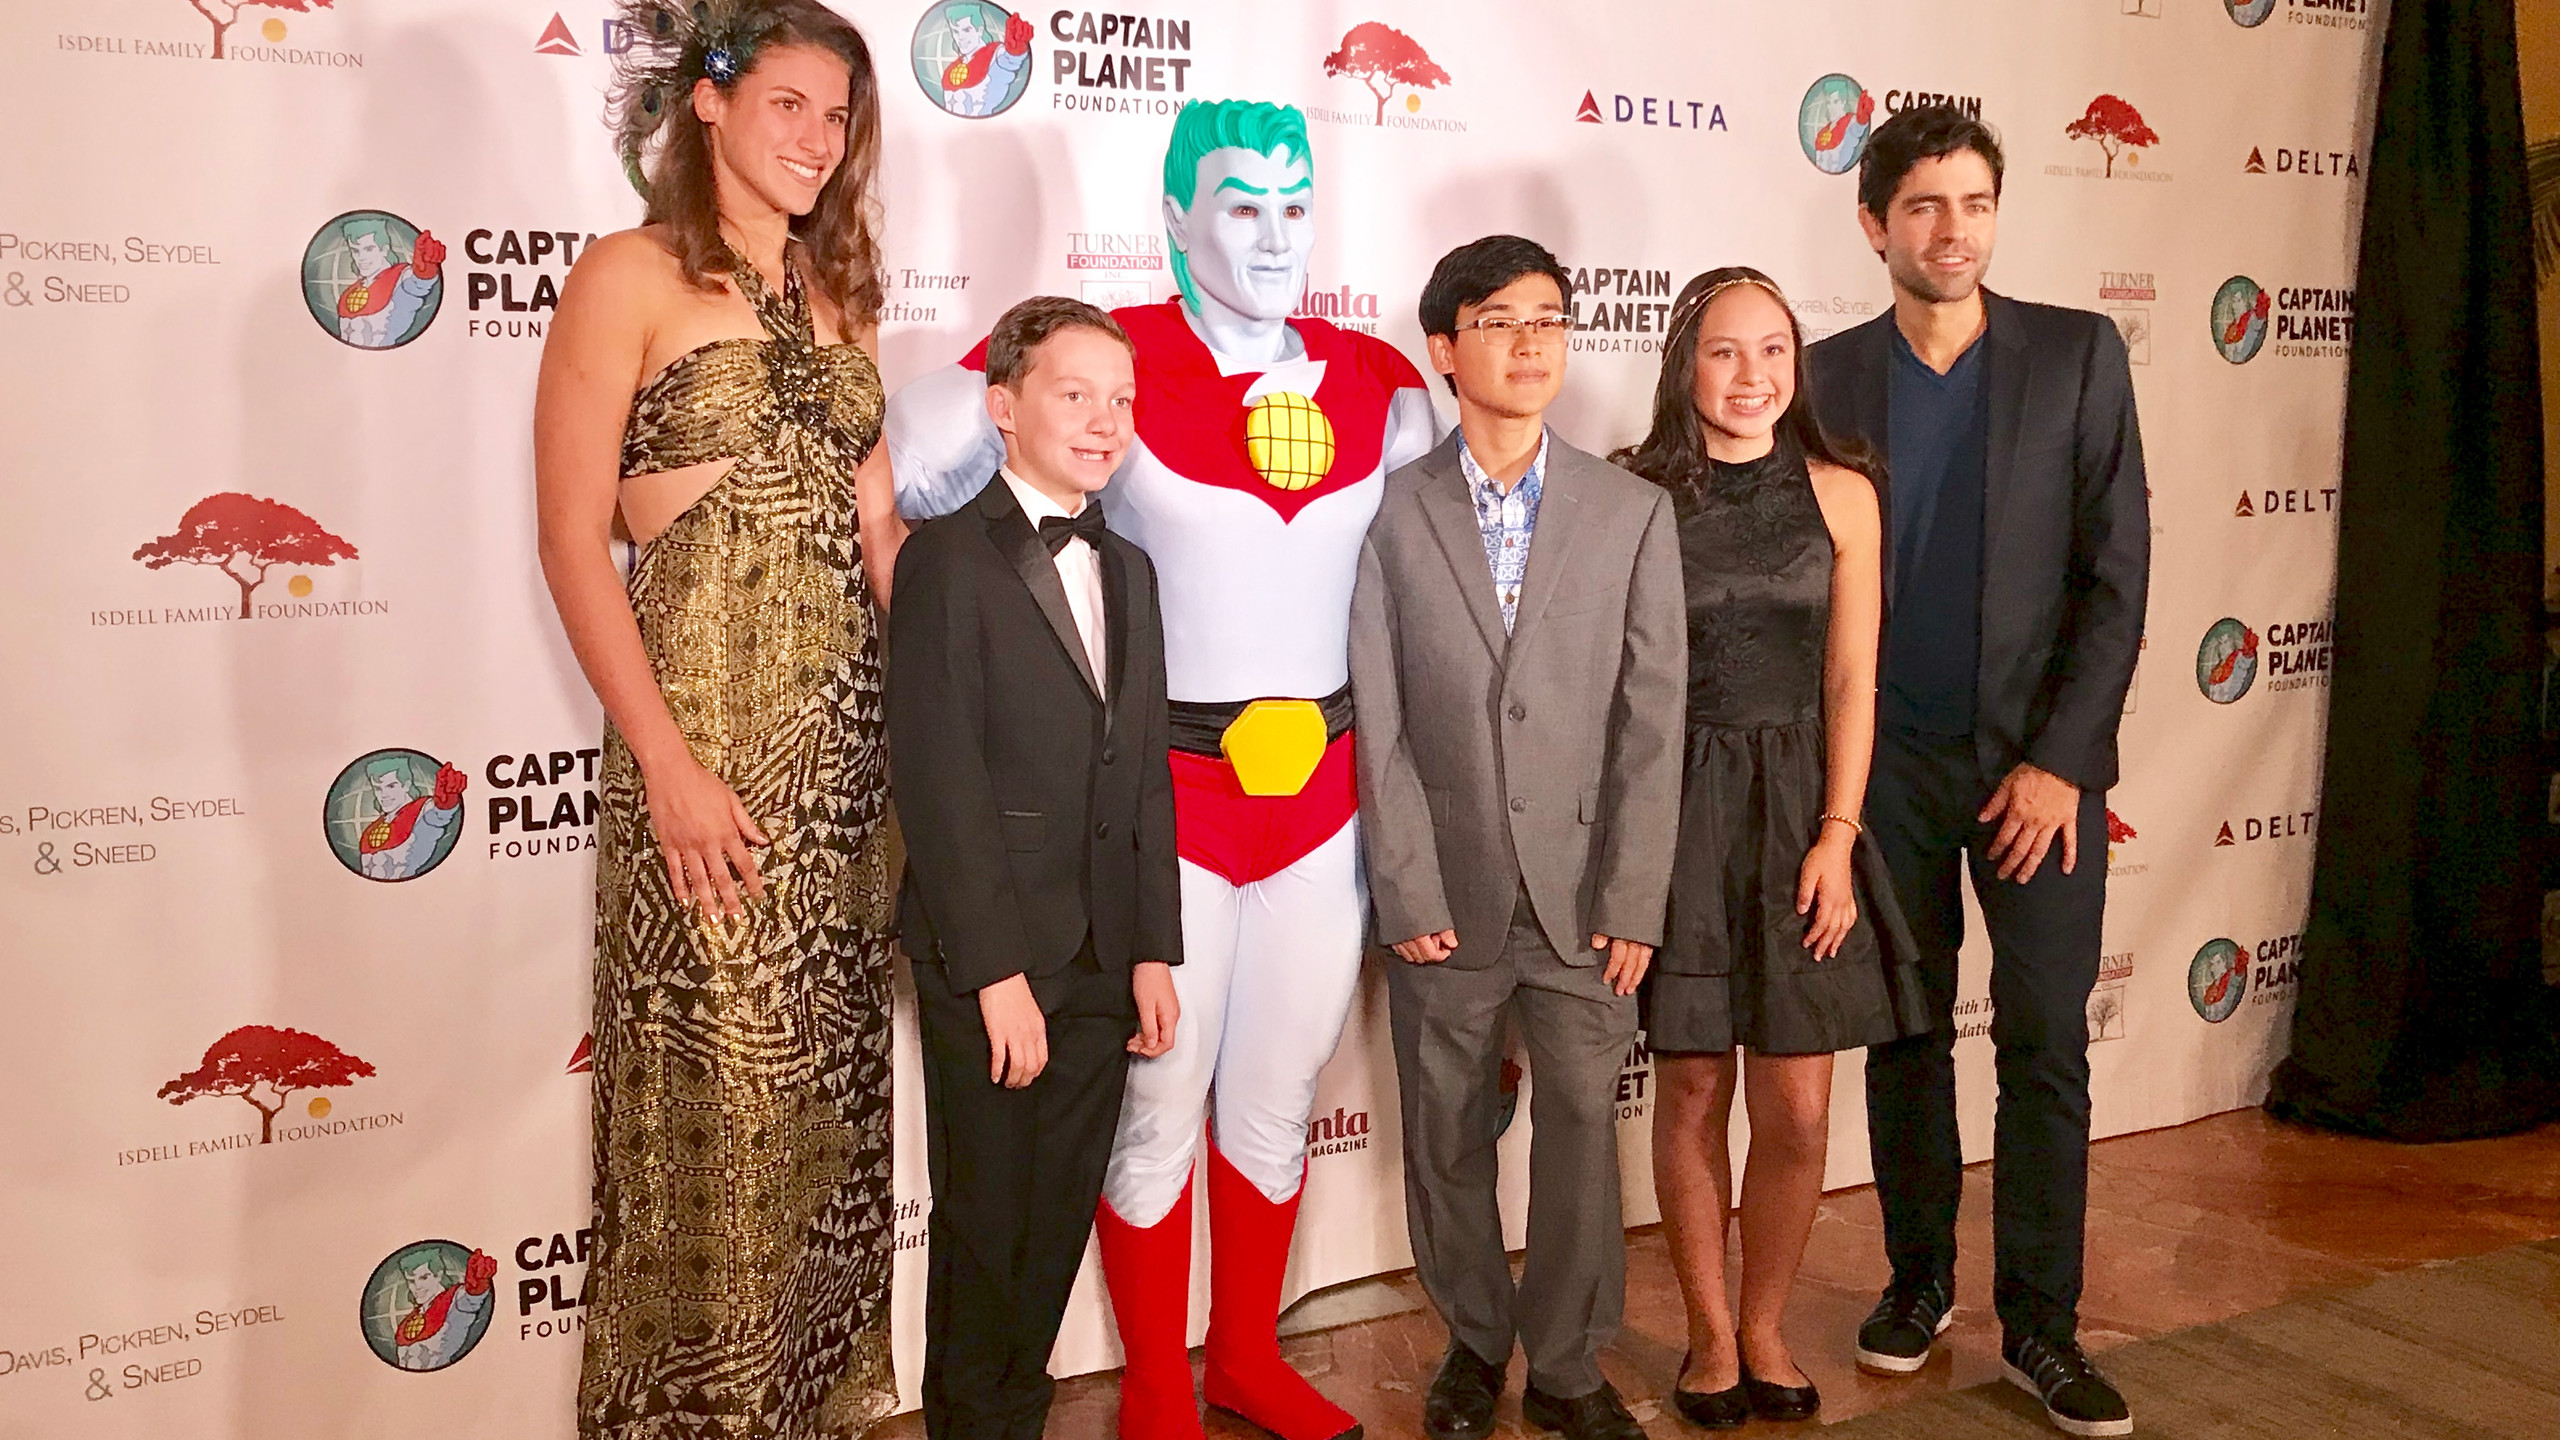 Captain Planet and Awardees